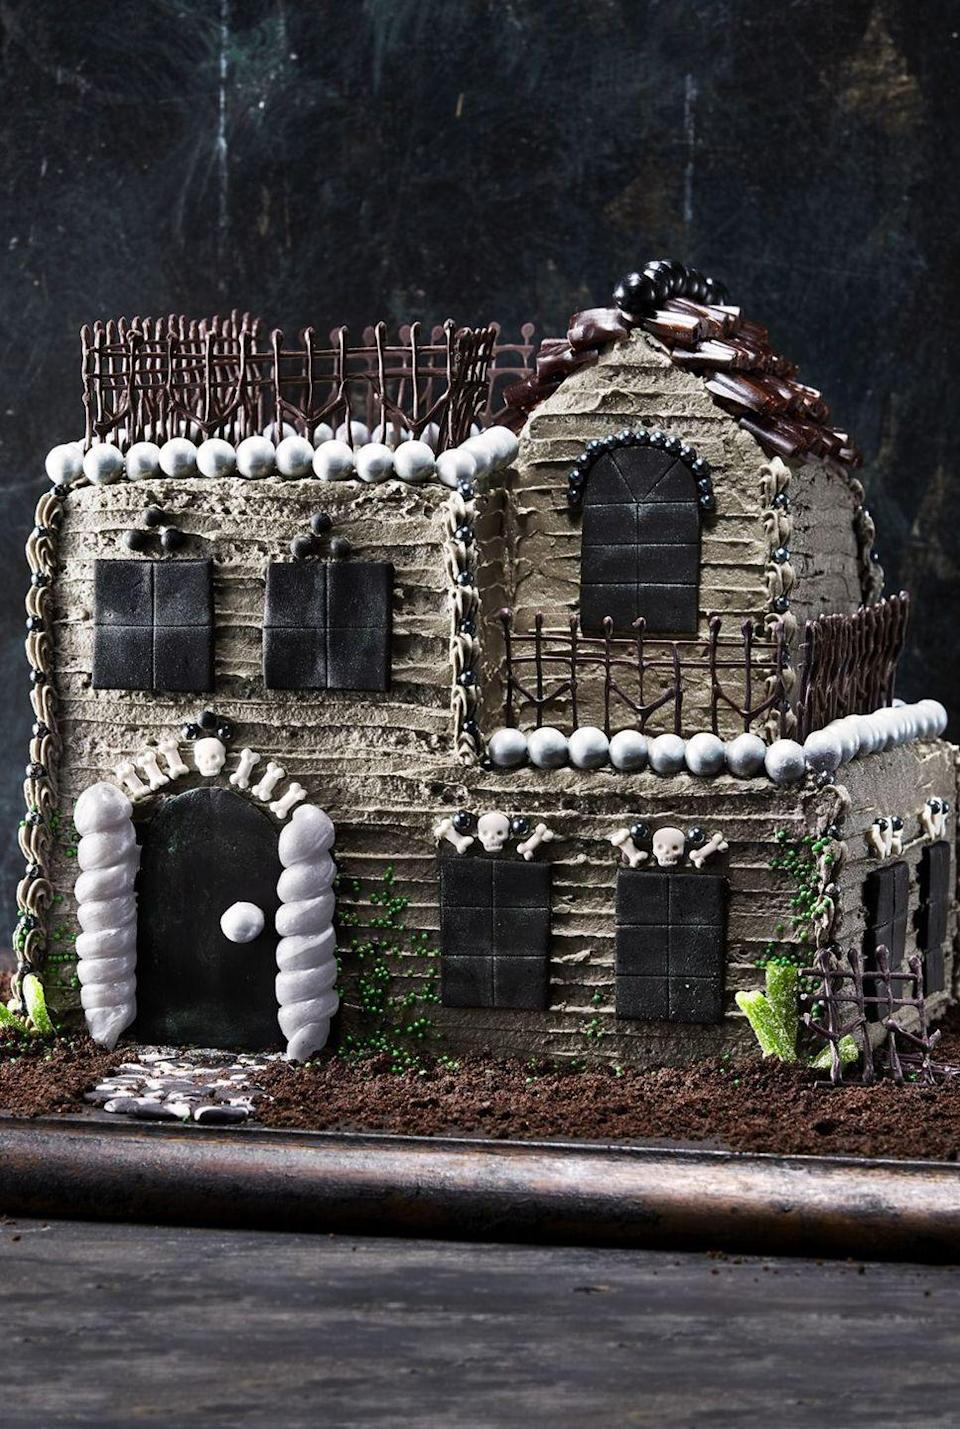 """<p>Sure, assembling this cake is a real baking challenge, but it's even more fun than trick-or-treating. Our suggestion? Do both this Halloween.</p><p><em><a href=""""https://www.countryliving.com/food-drinks/a28943697/towering-haunted-house-cake/"""" rel=""""nofollow noopener"""" target=""""_blank"""" data-ylk=""""slk:Get the recipe from Country Living »"""" class=""""link rapid-noclick-resp"""">Get the recipe from Country Living »</a></em></p>"""